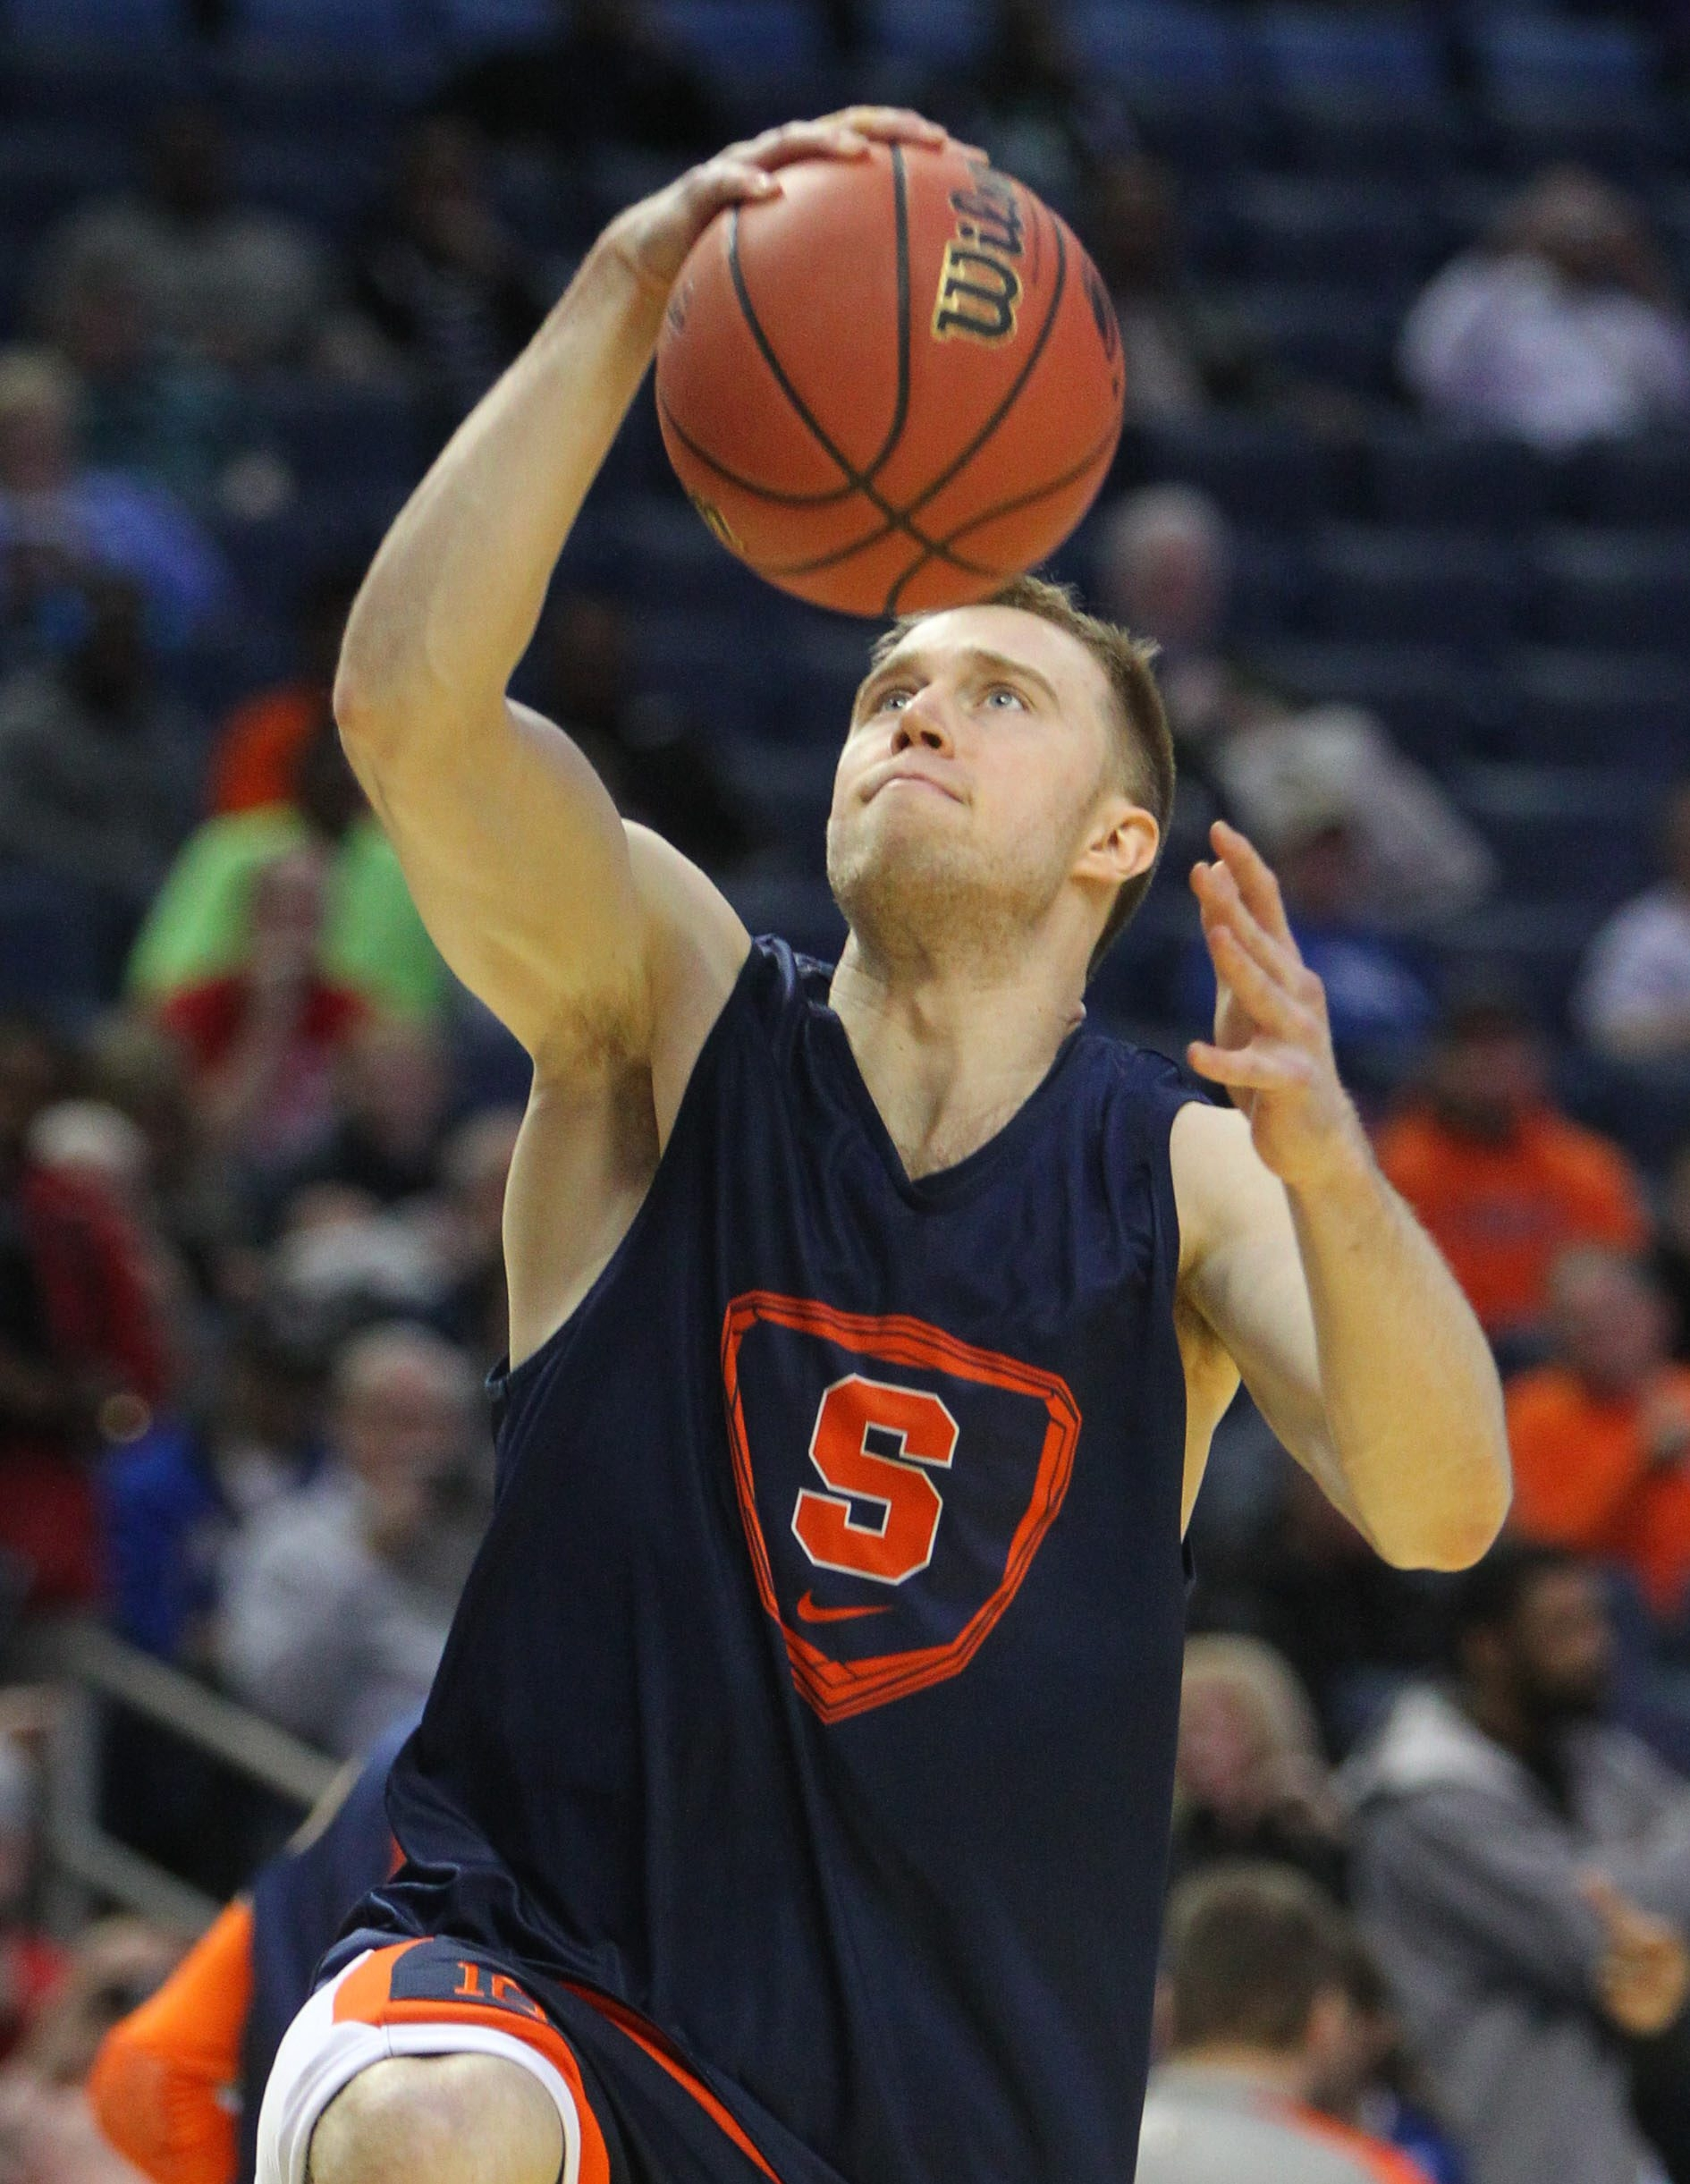 Syracuse's Trevor Cooney led the Atlantic Coast Conference in three-point field goals made this season, at almost three per game.